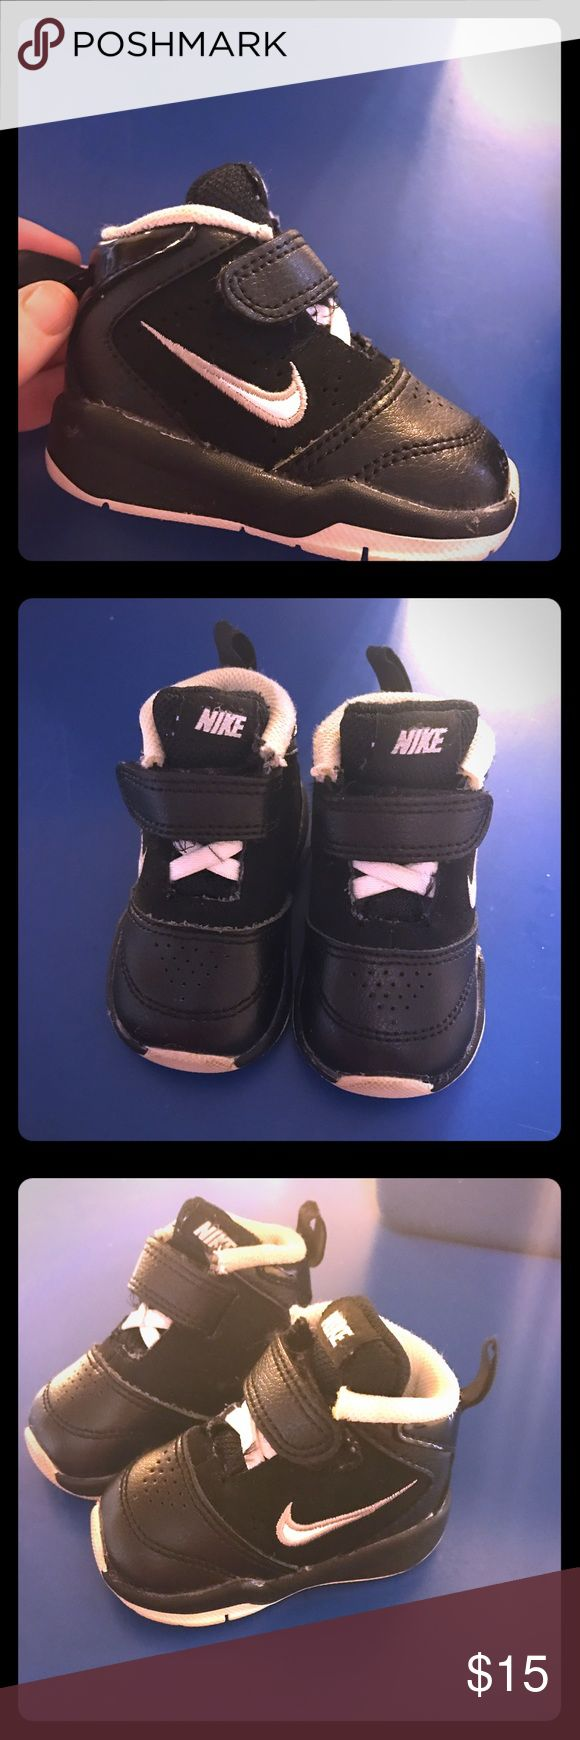 Baby Boy Nike high tops Baby Boy Nike high tops. Black and White size 2c. Plenty of life left in them! Nike Shoes Sneakers